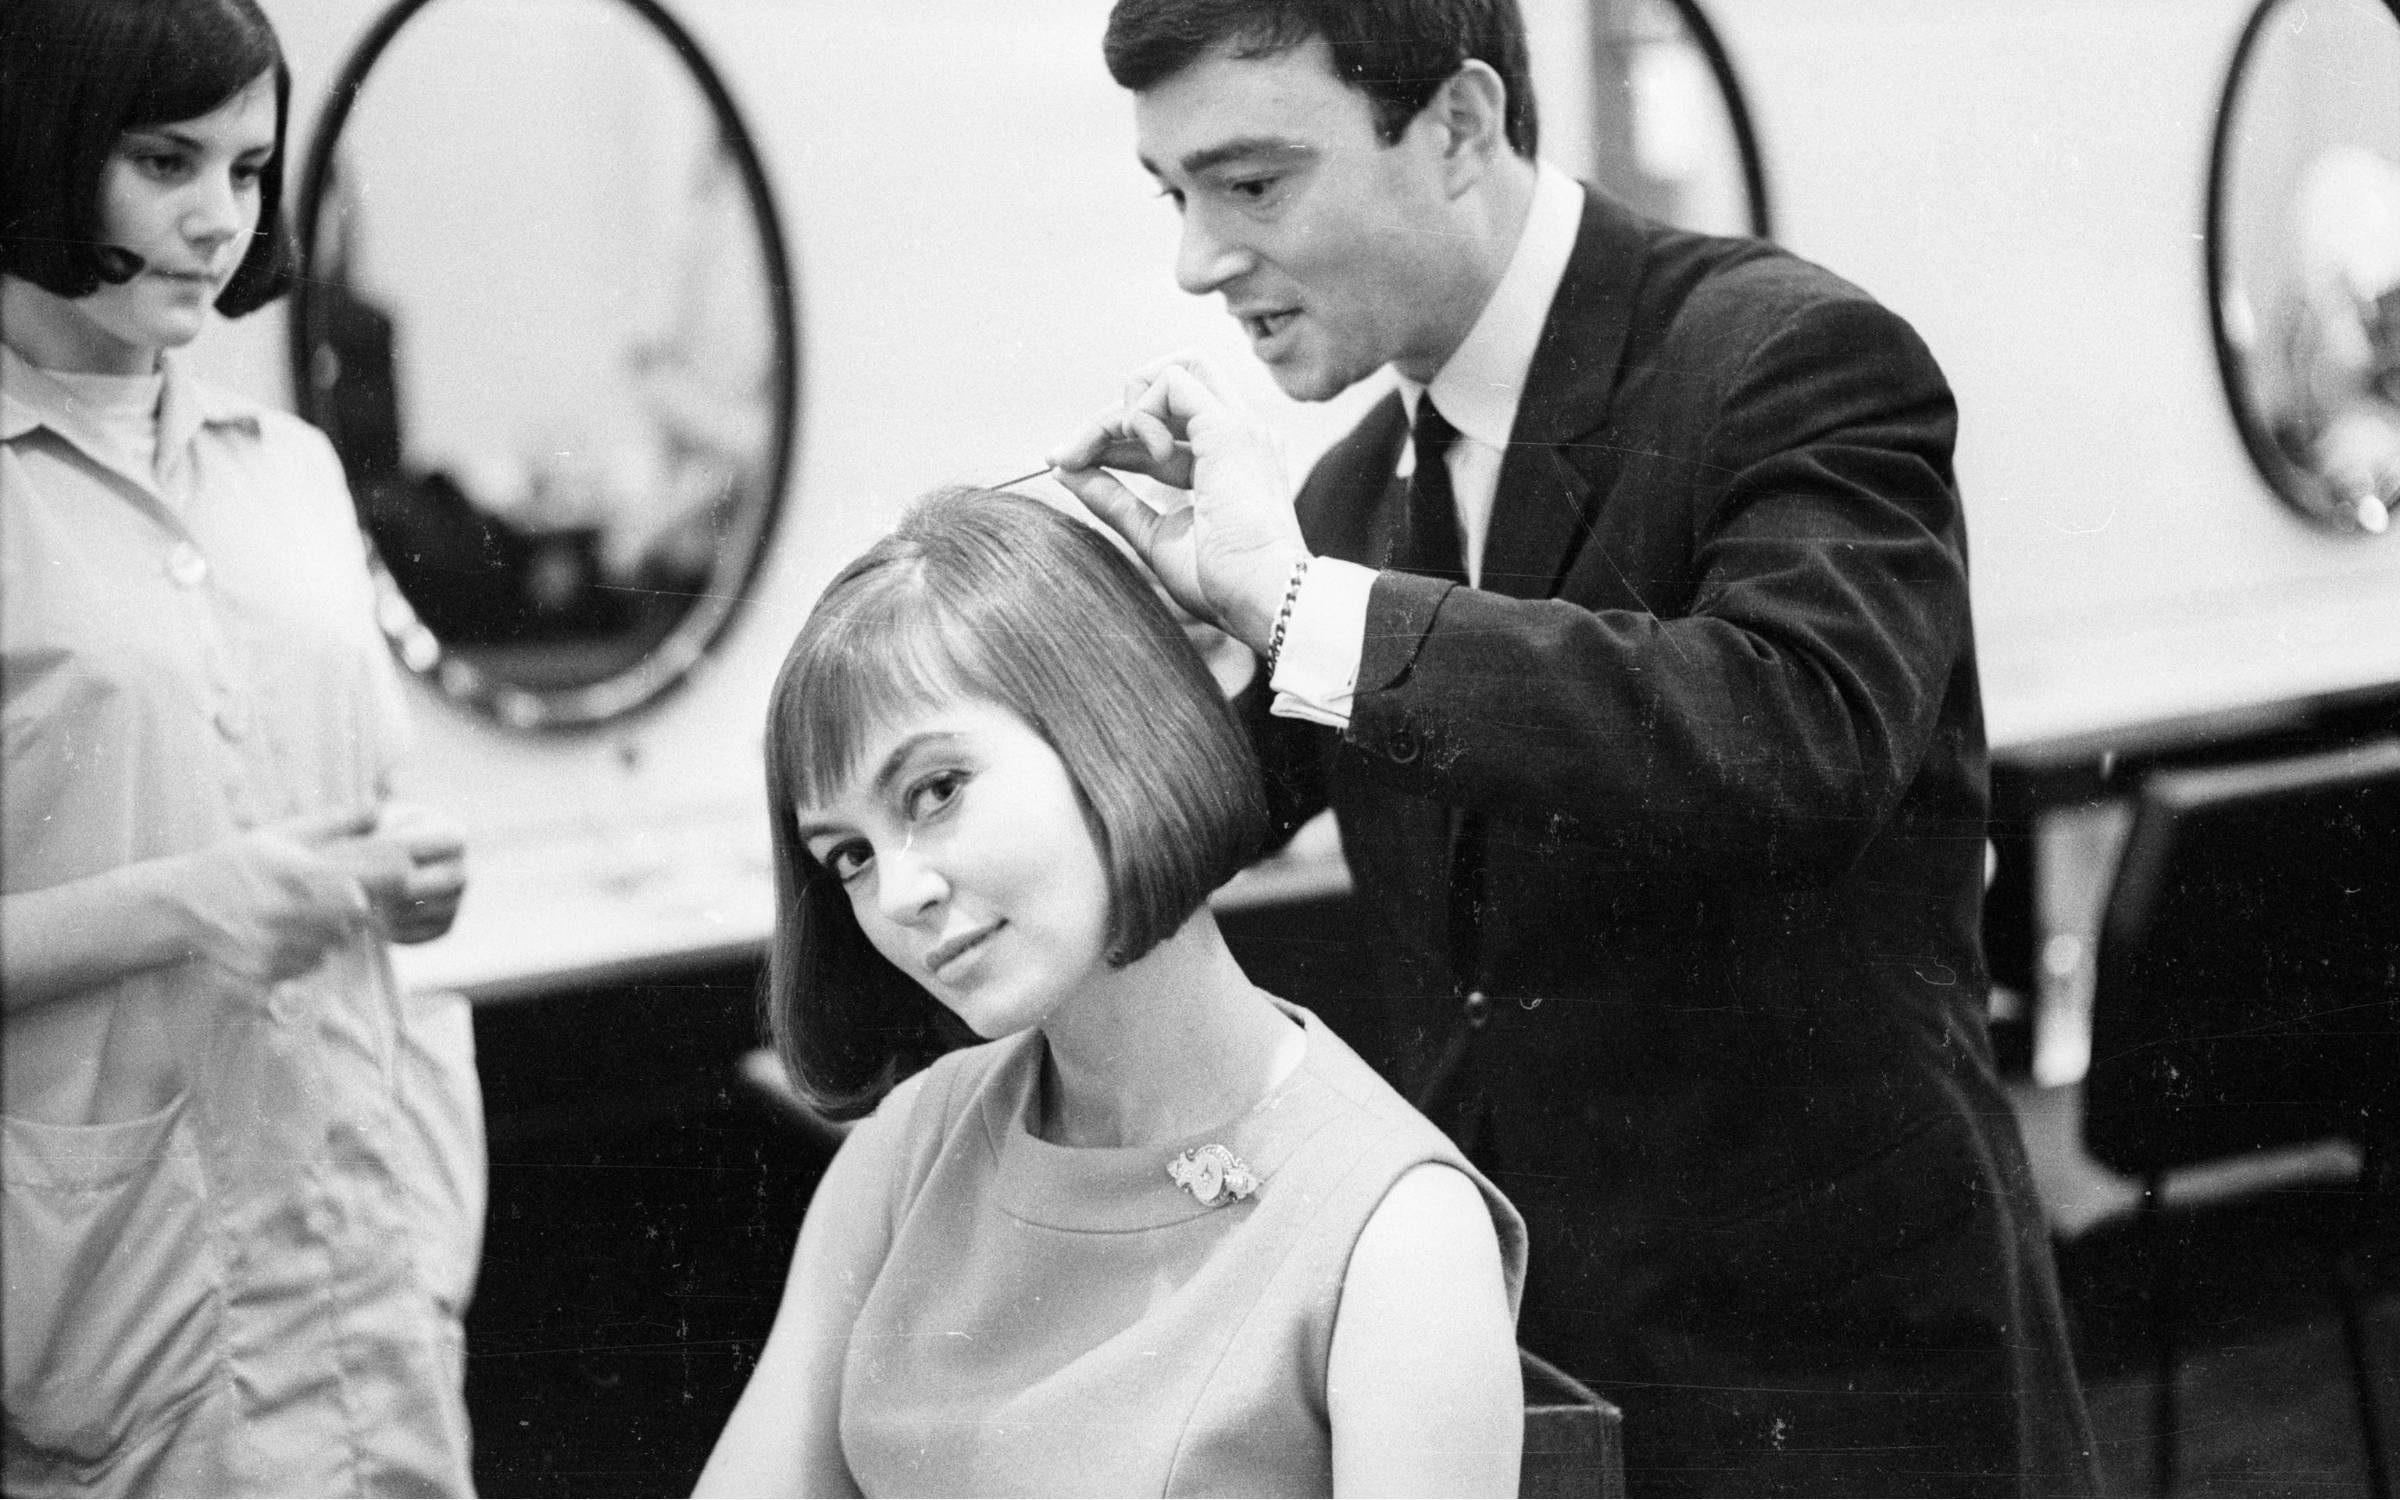 British hairdresser Vidal Sassoon creates a long bob with a soft fringe for actress Janette Scott. Credit: M. McKeown/Express/Getty Images